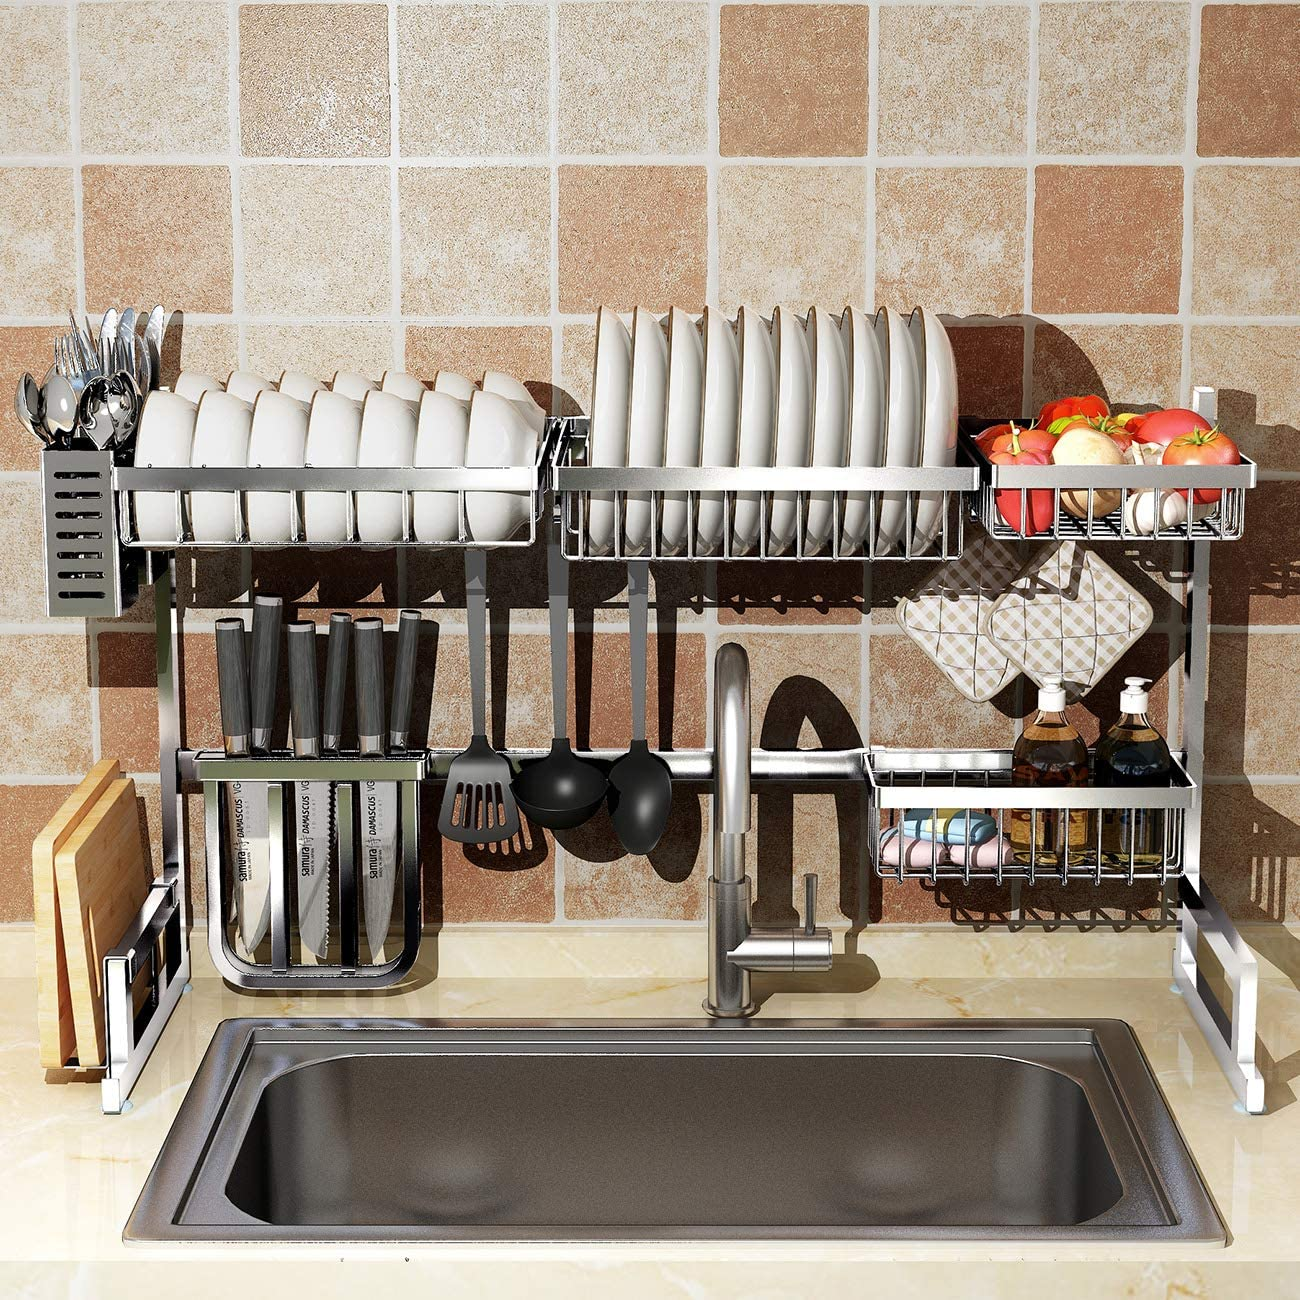 Stainless Steel Kitchen Rack Dish Drain Drying Holder Over Sink Storage Shelf